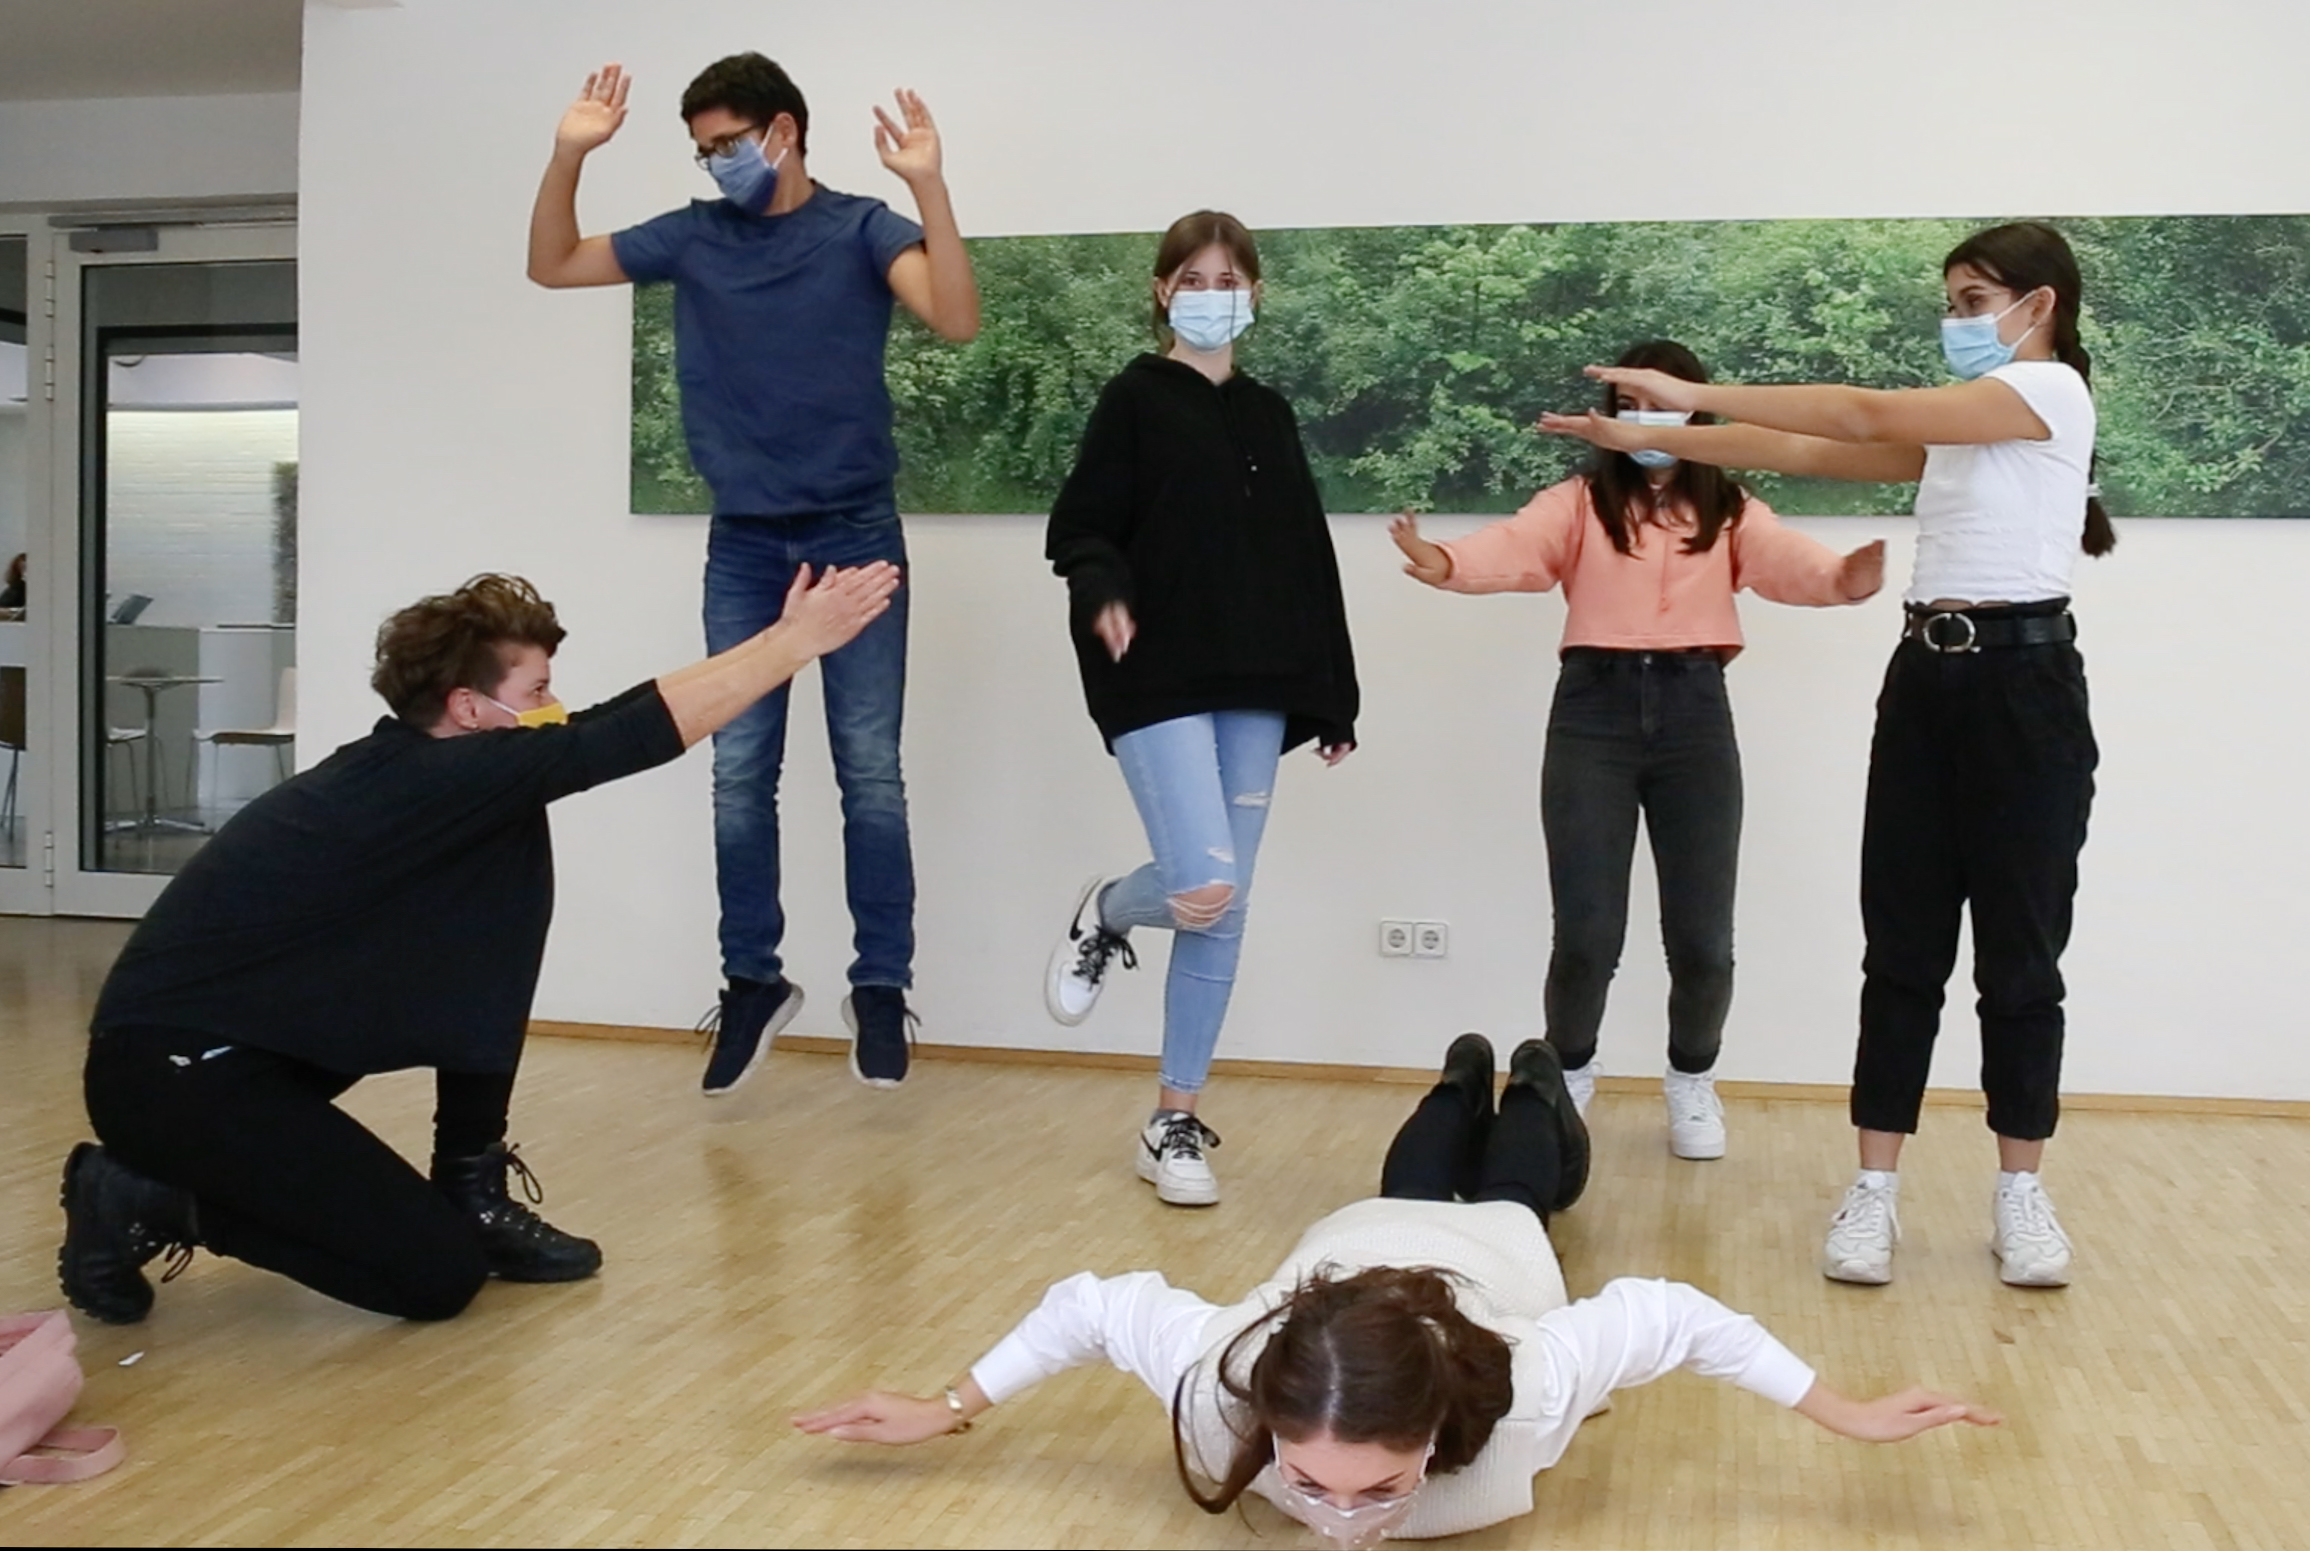 jugendkulturjahr-2020-ratingen-jkj2020-performance-workshop-museum